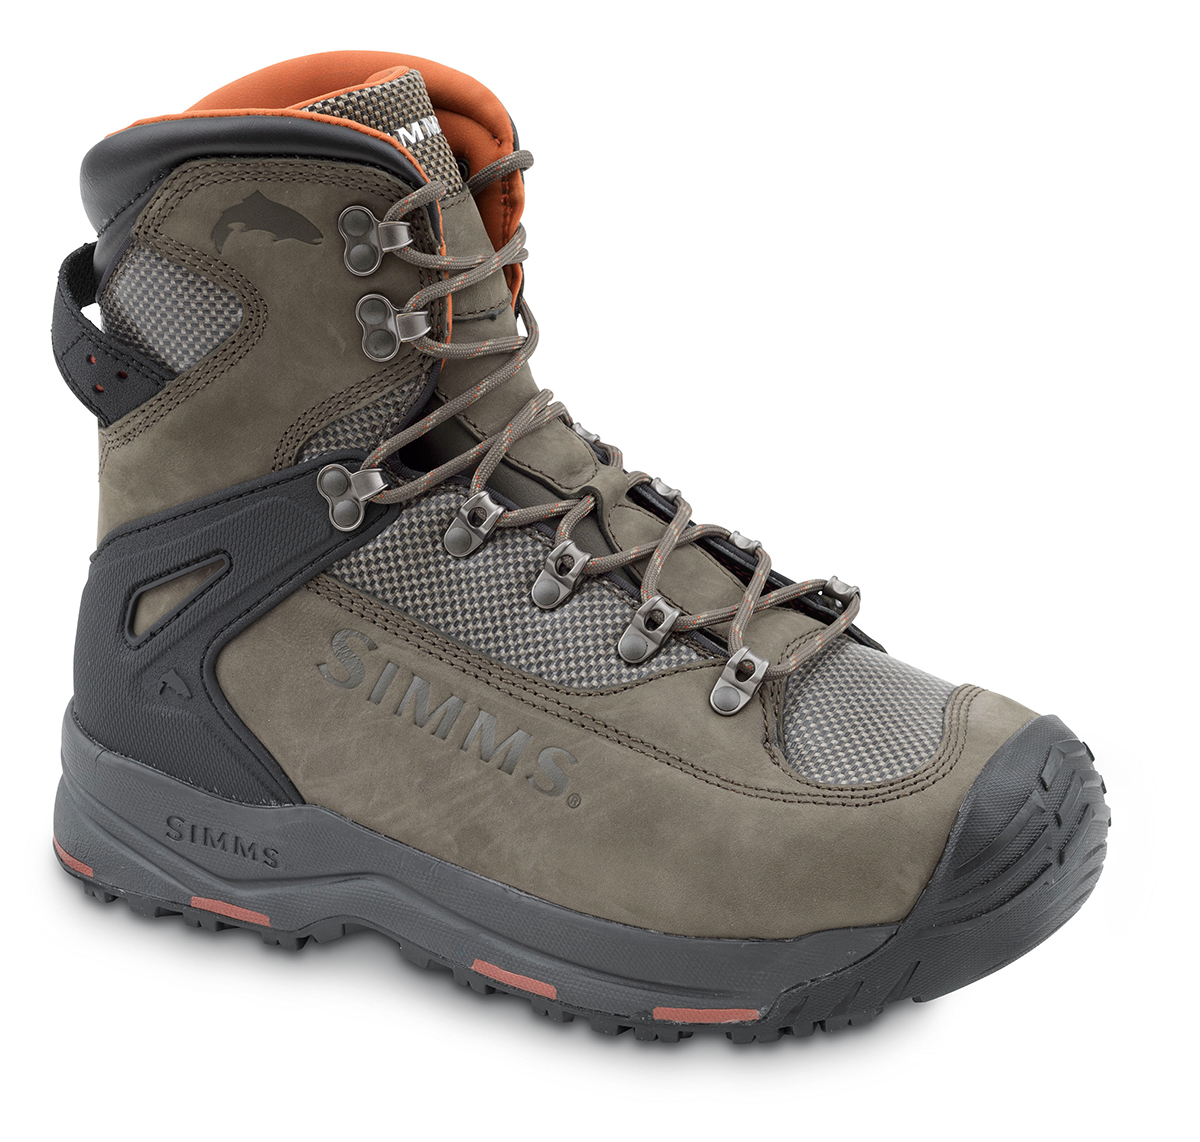 Simms G3 Guide Boot Vibram Wading Boots Fishing Shop Taimen